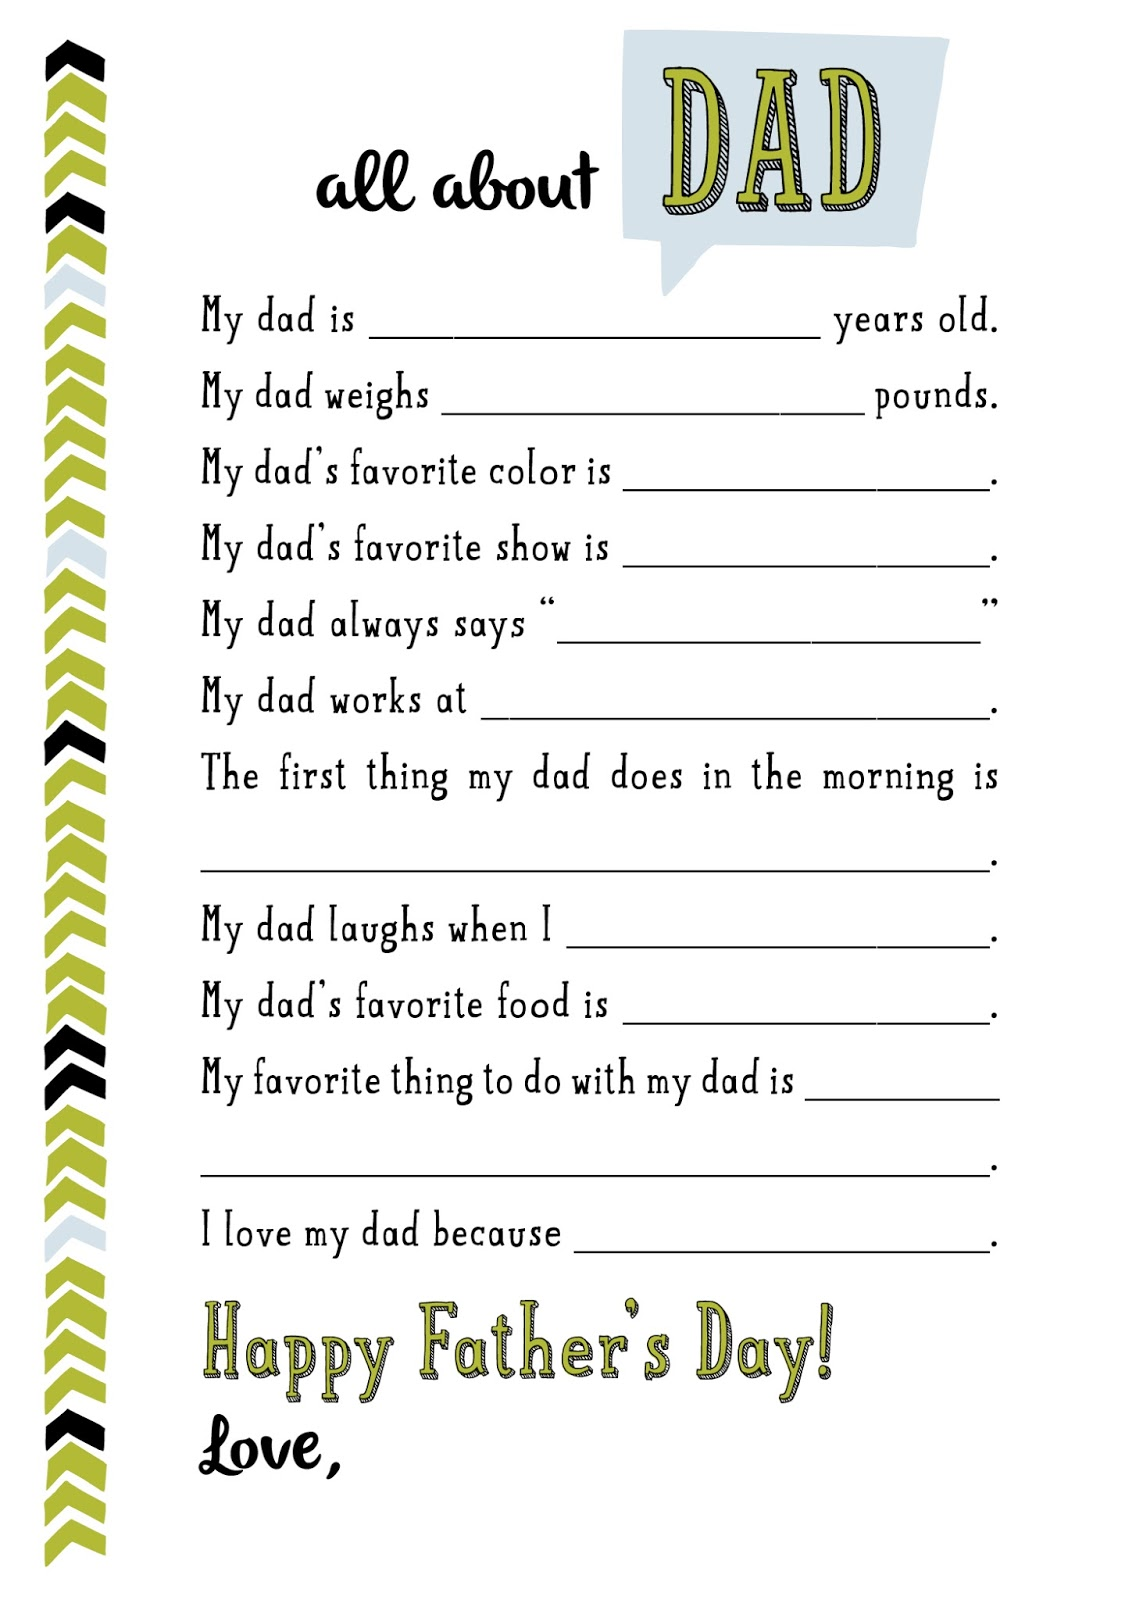 Clean image with regard to all about my dad free printable